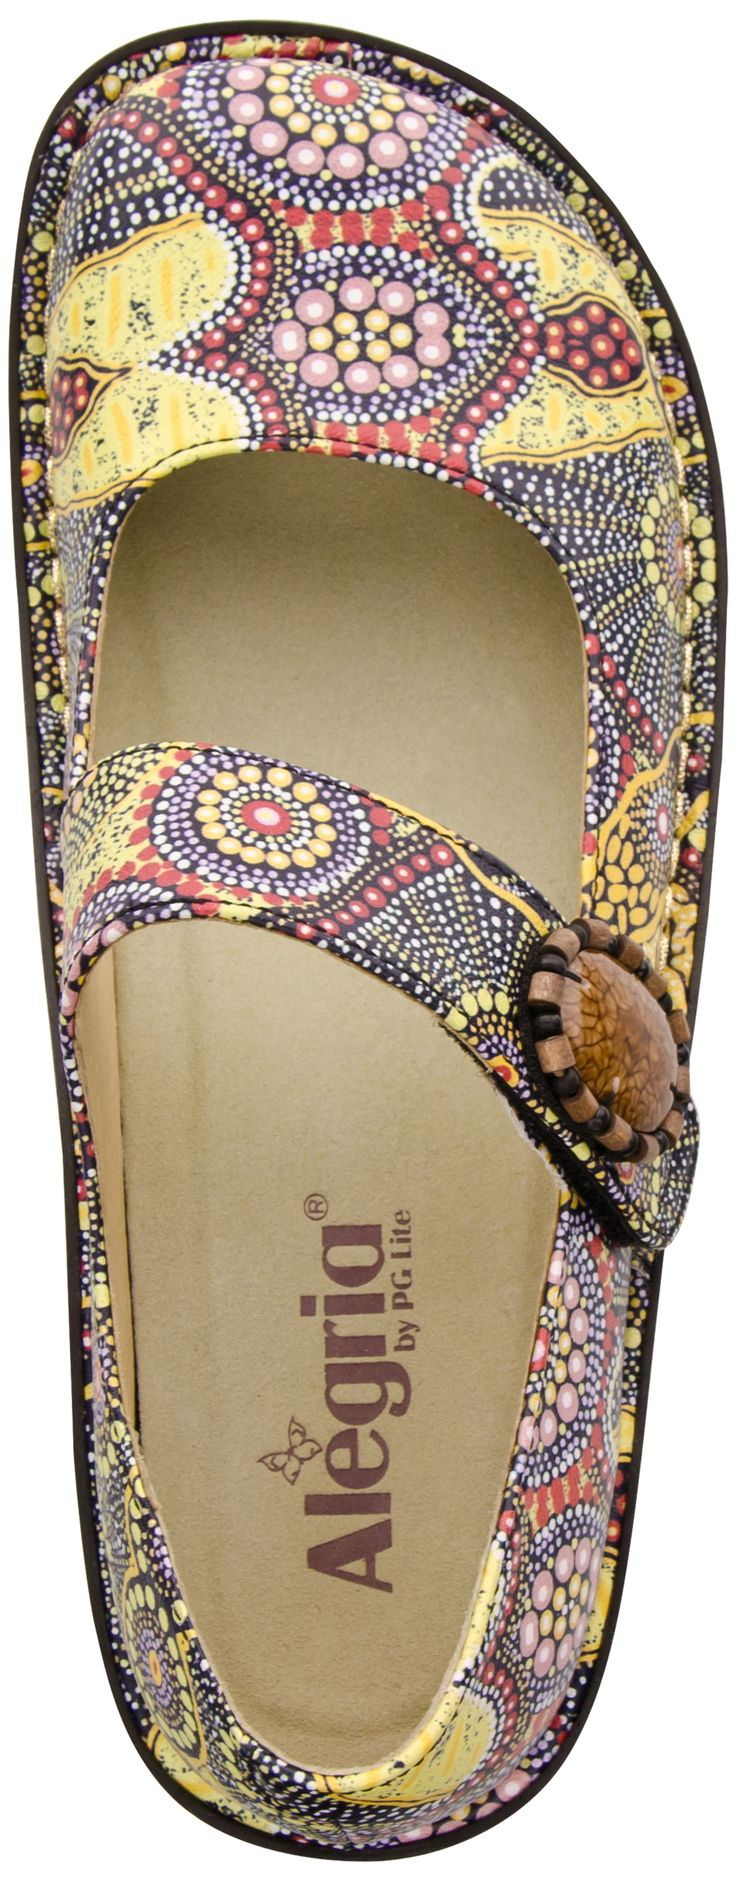 Buy the Alegria Paloma Print casual shoe at PlanetShoes.com. Discover Alegria shoes ergonomically developed to provide maximum support and unparalleled comfort with your style in mind at PlanetShoes.com, your trusted source for feel-good footwear, with free shipping & returns! (Medieval)